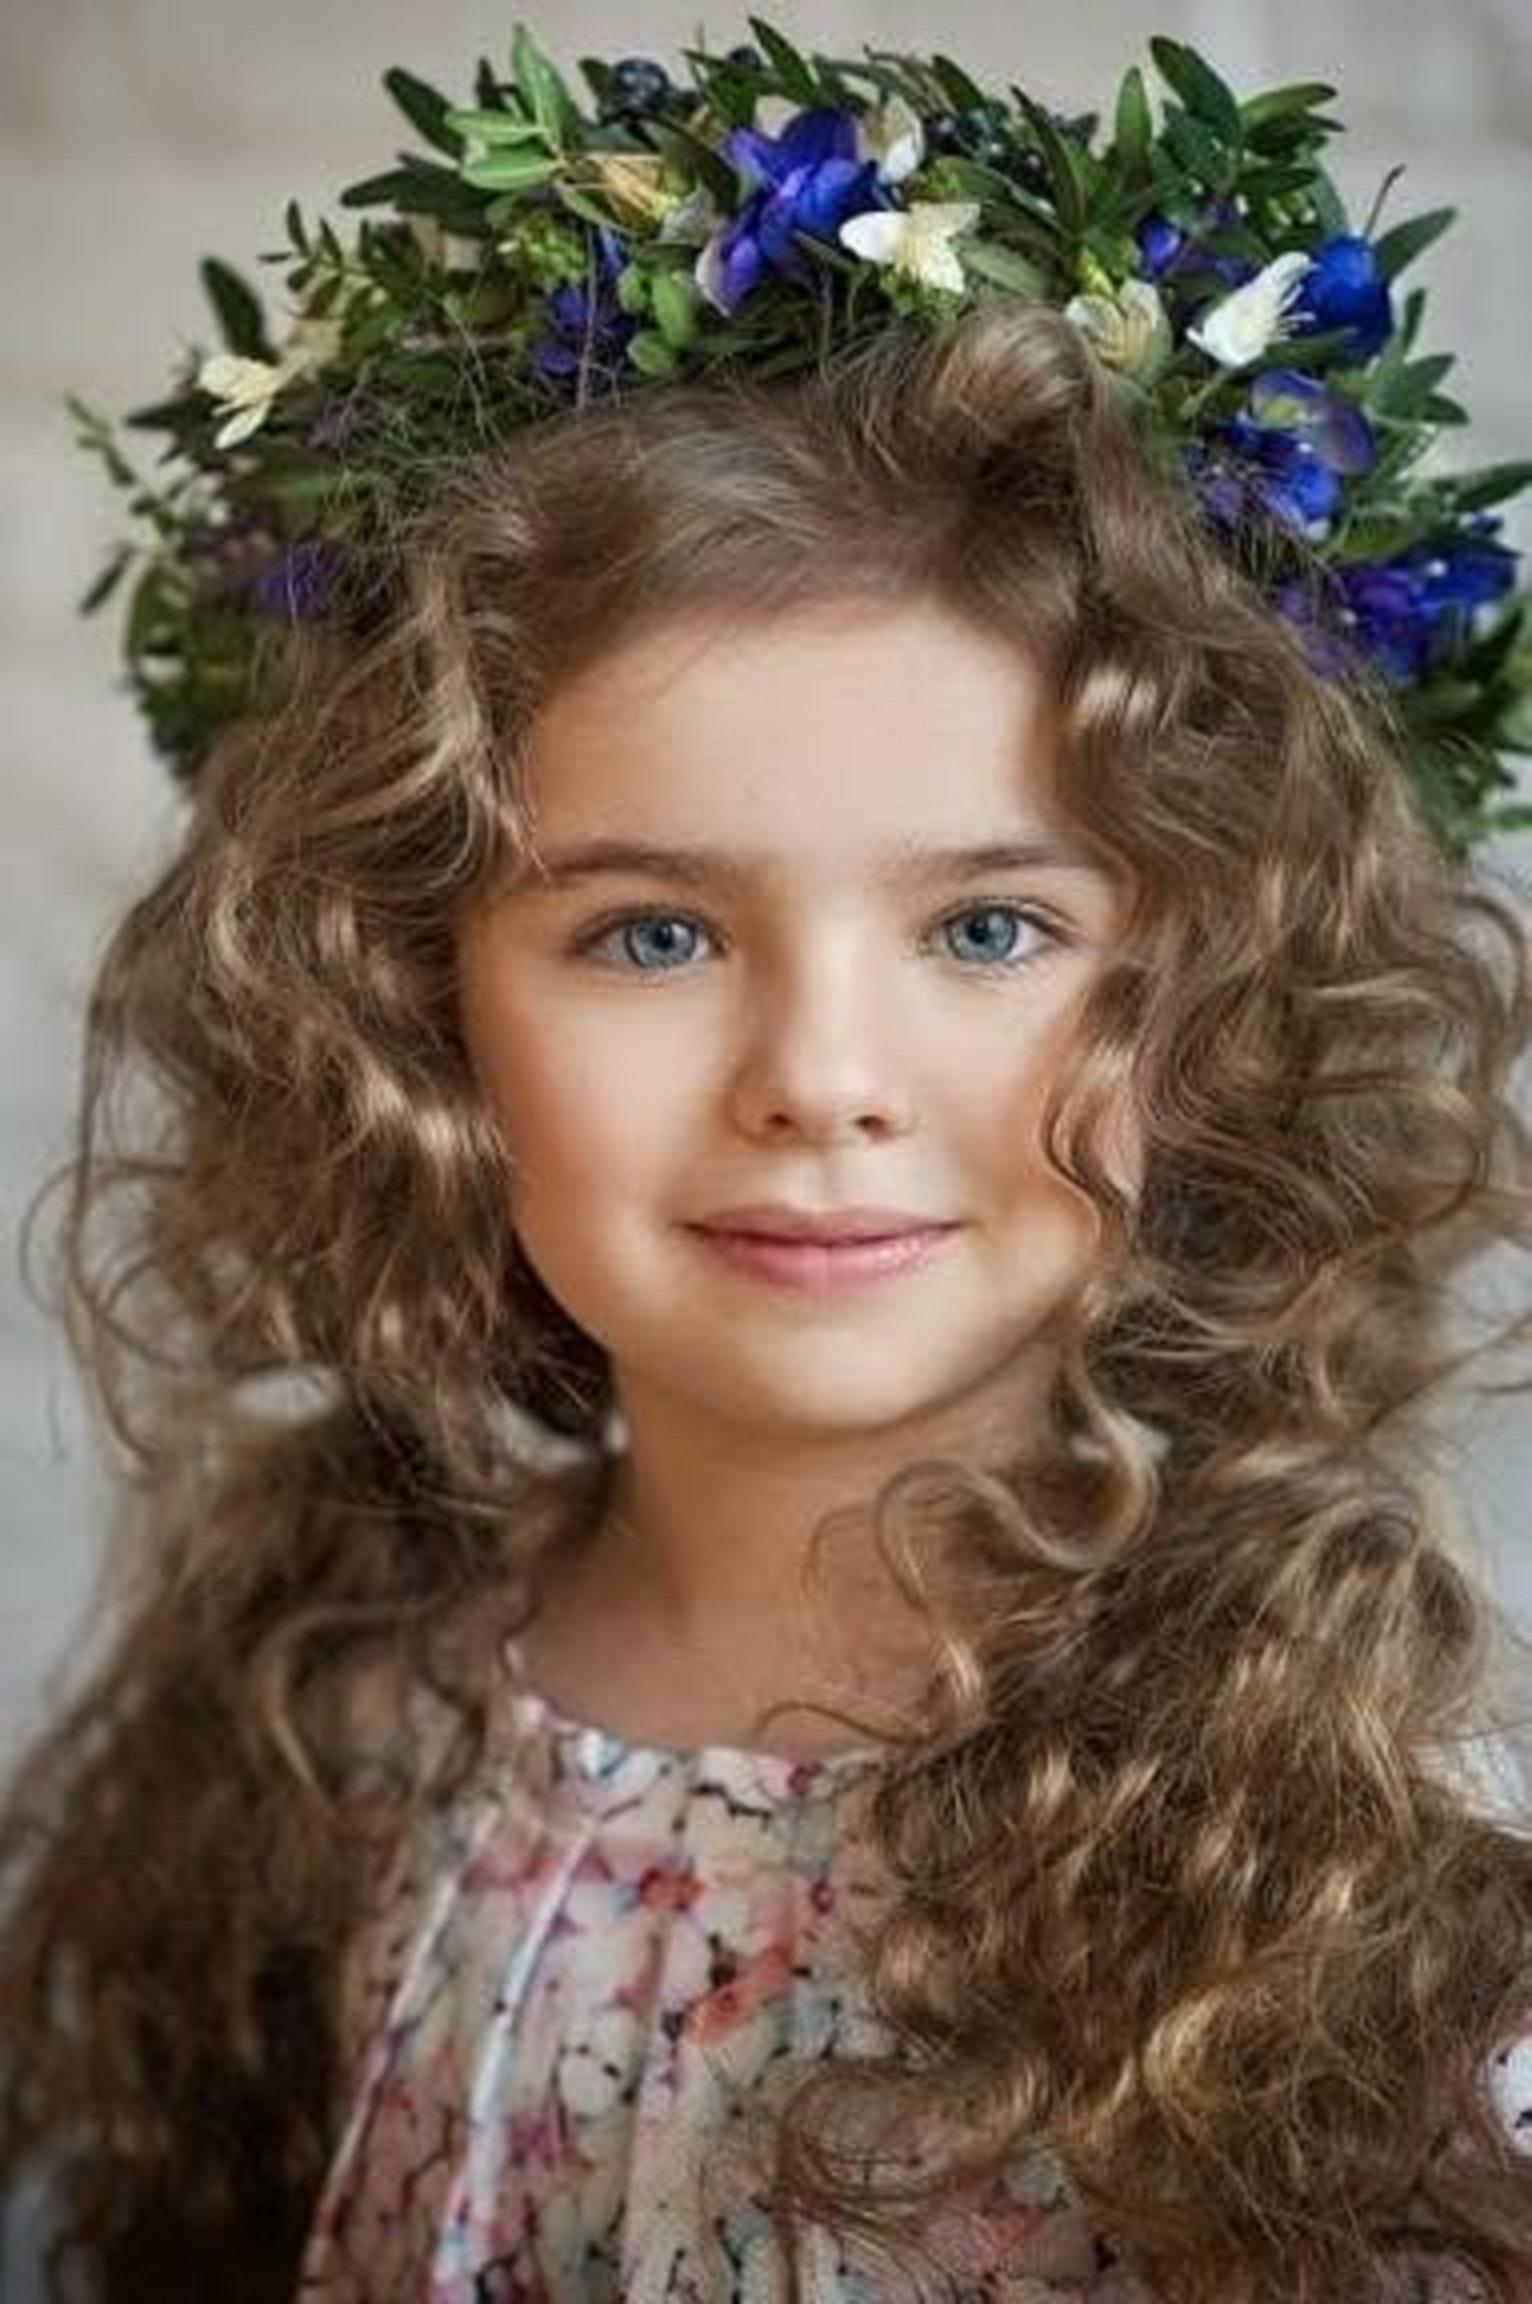 Little Beauty Royalty Free Stock Images: Beautiful Child....she Is Amazing I Would Love To See Her